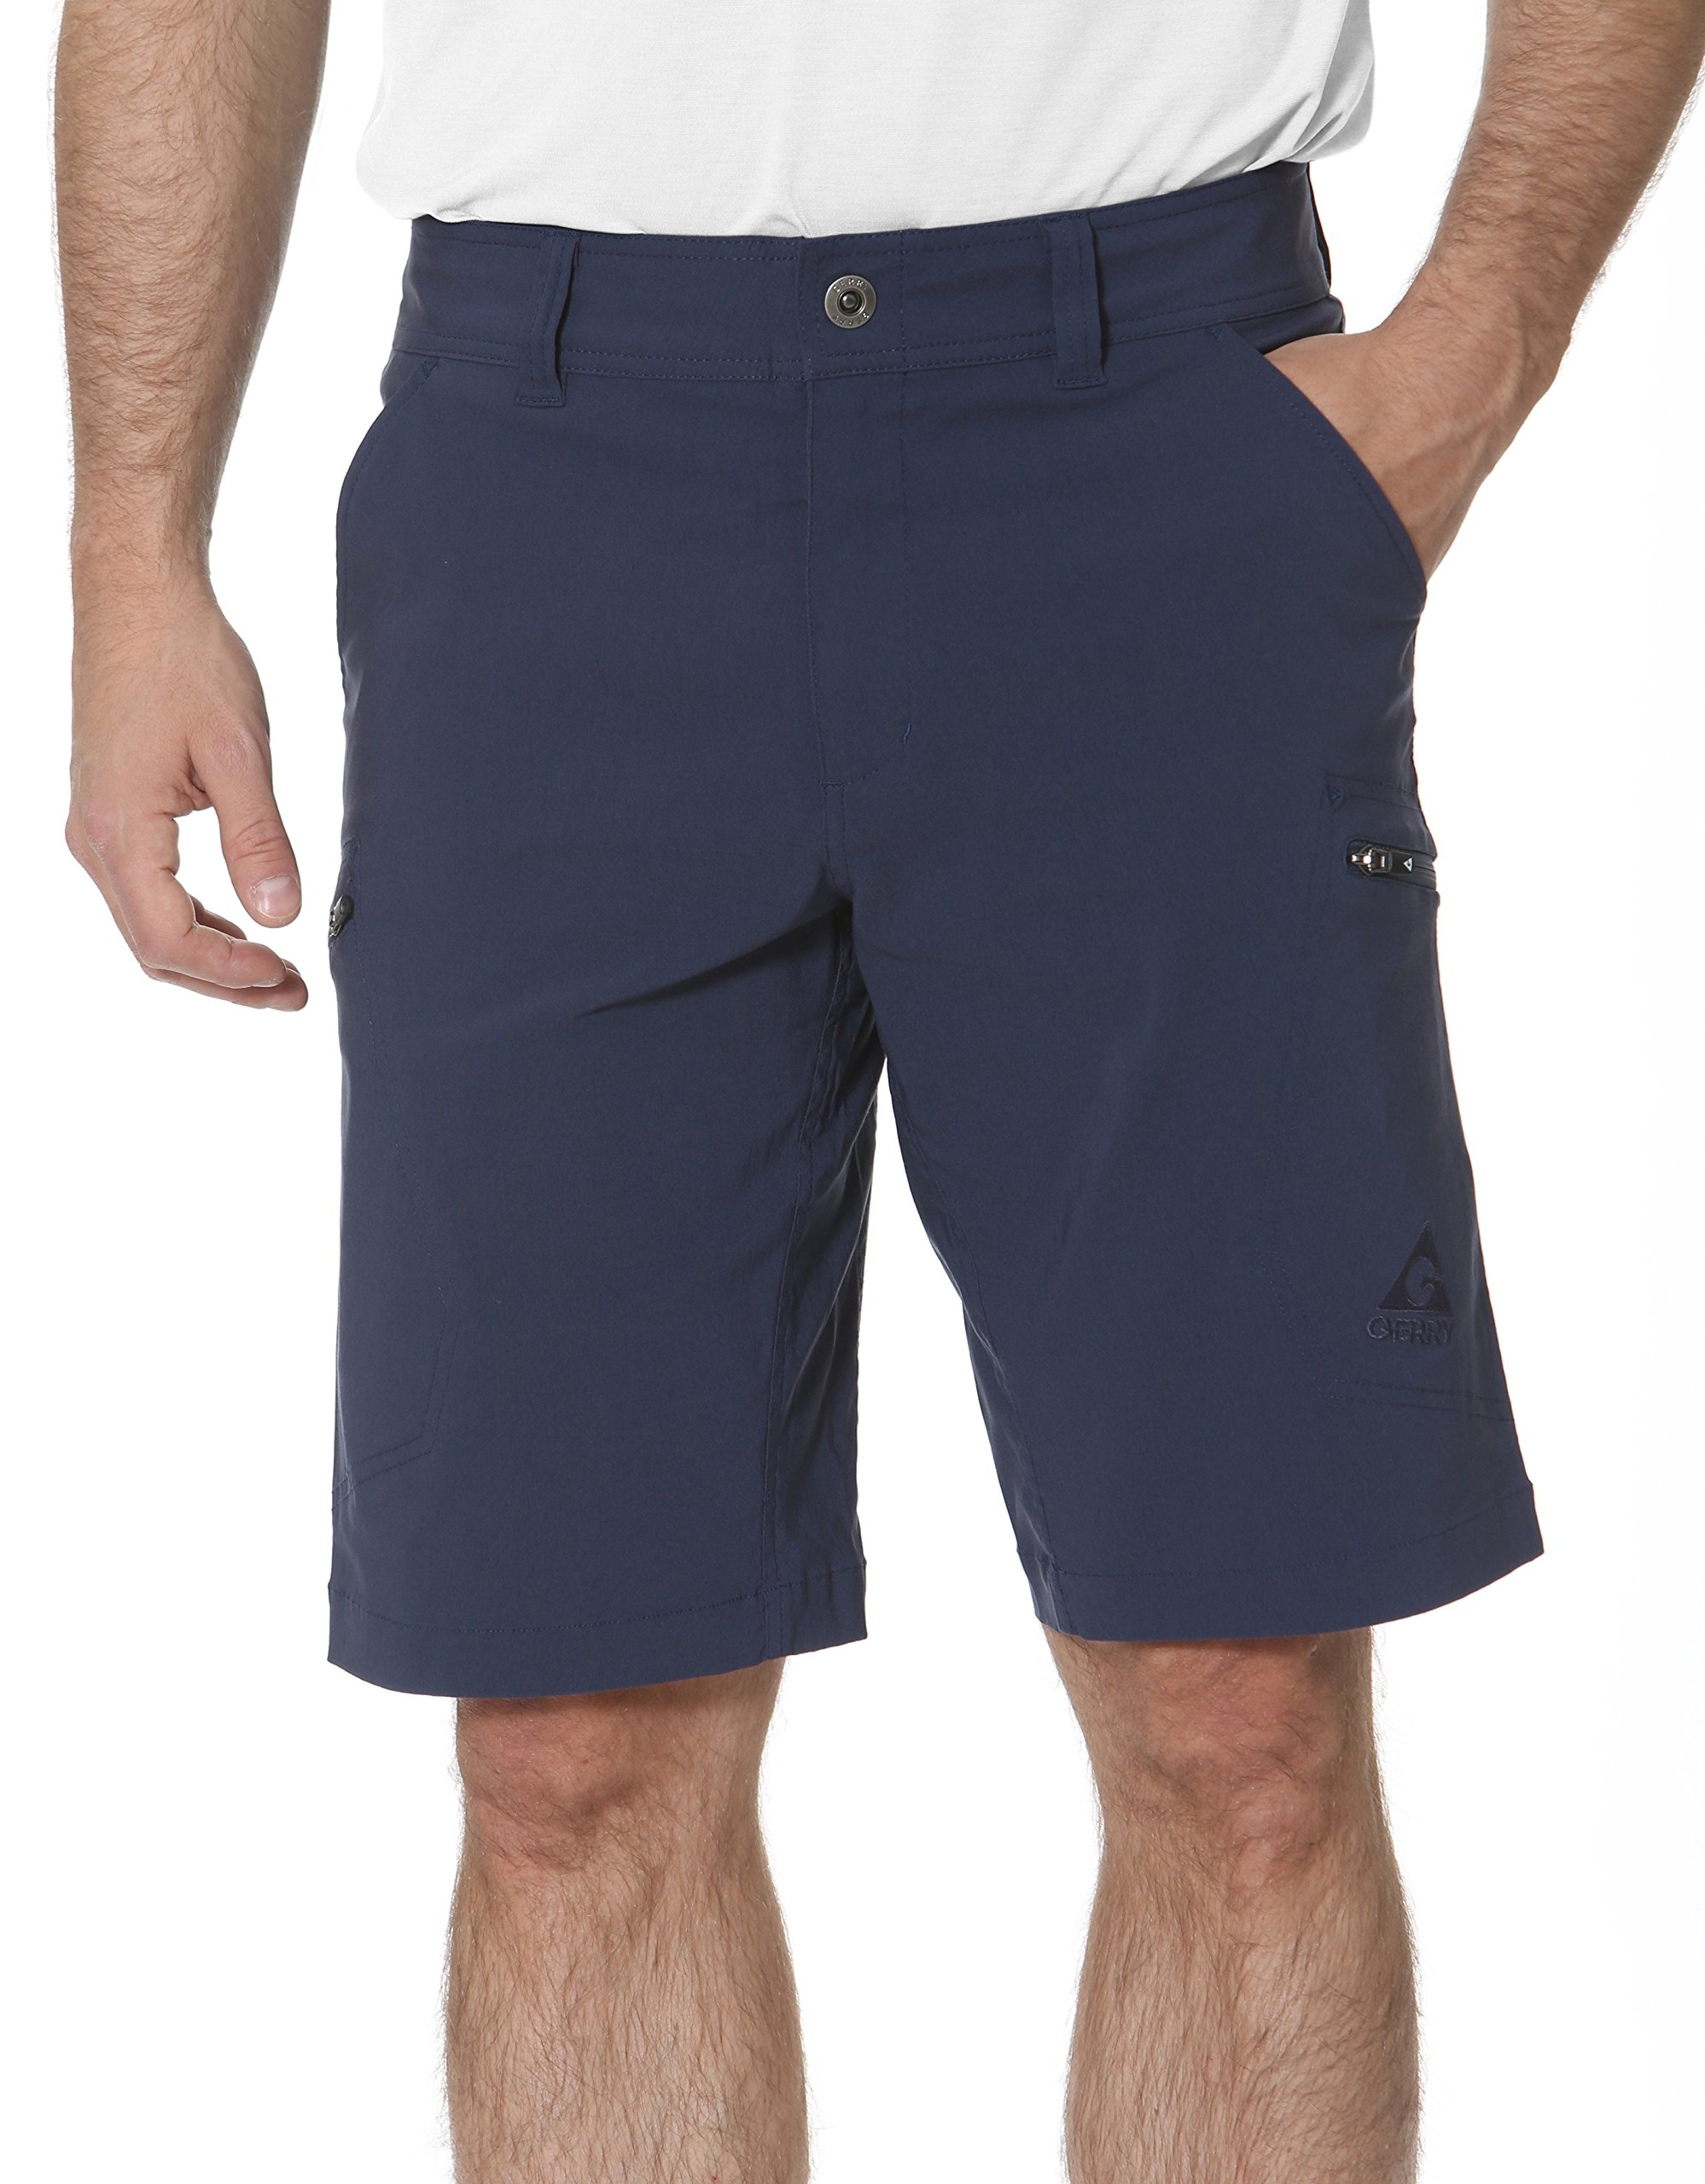 Gerry Stretch River Hiking Short, Blue Dust, Size 30